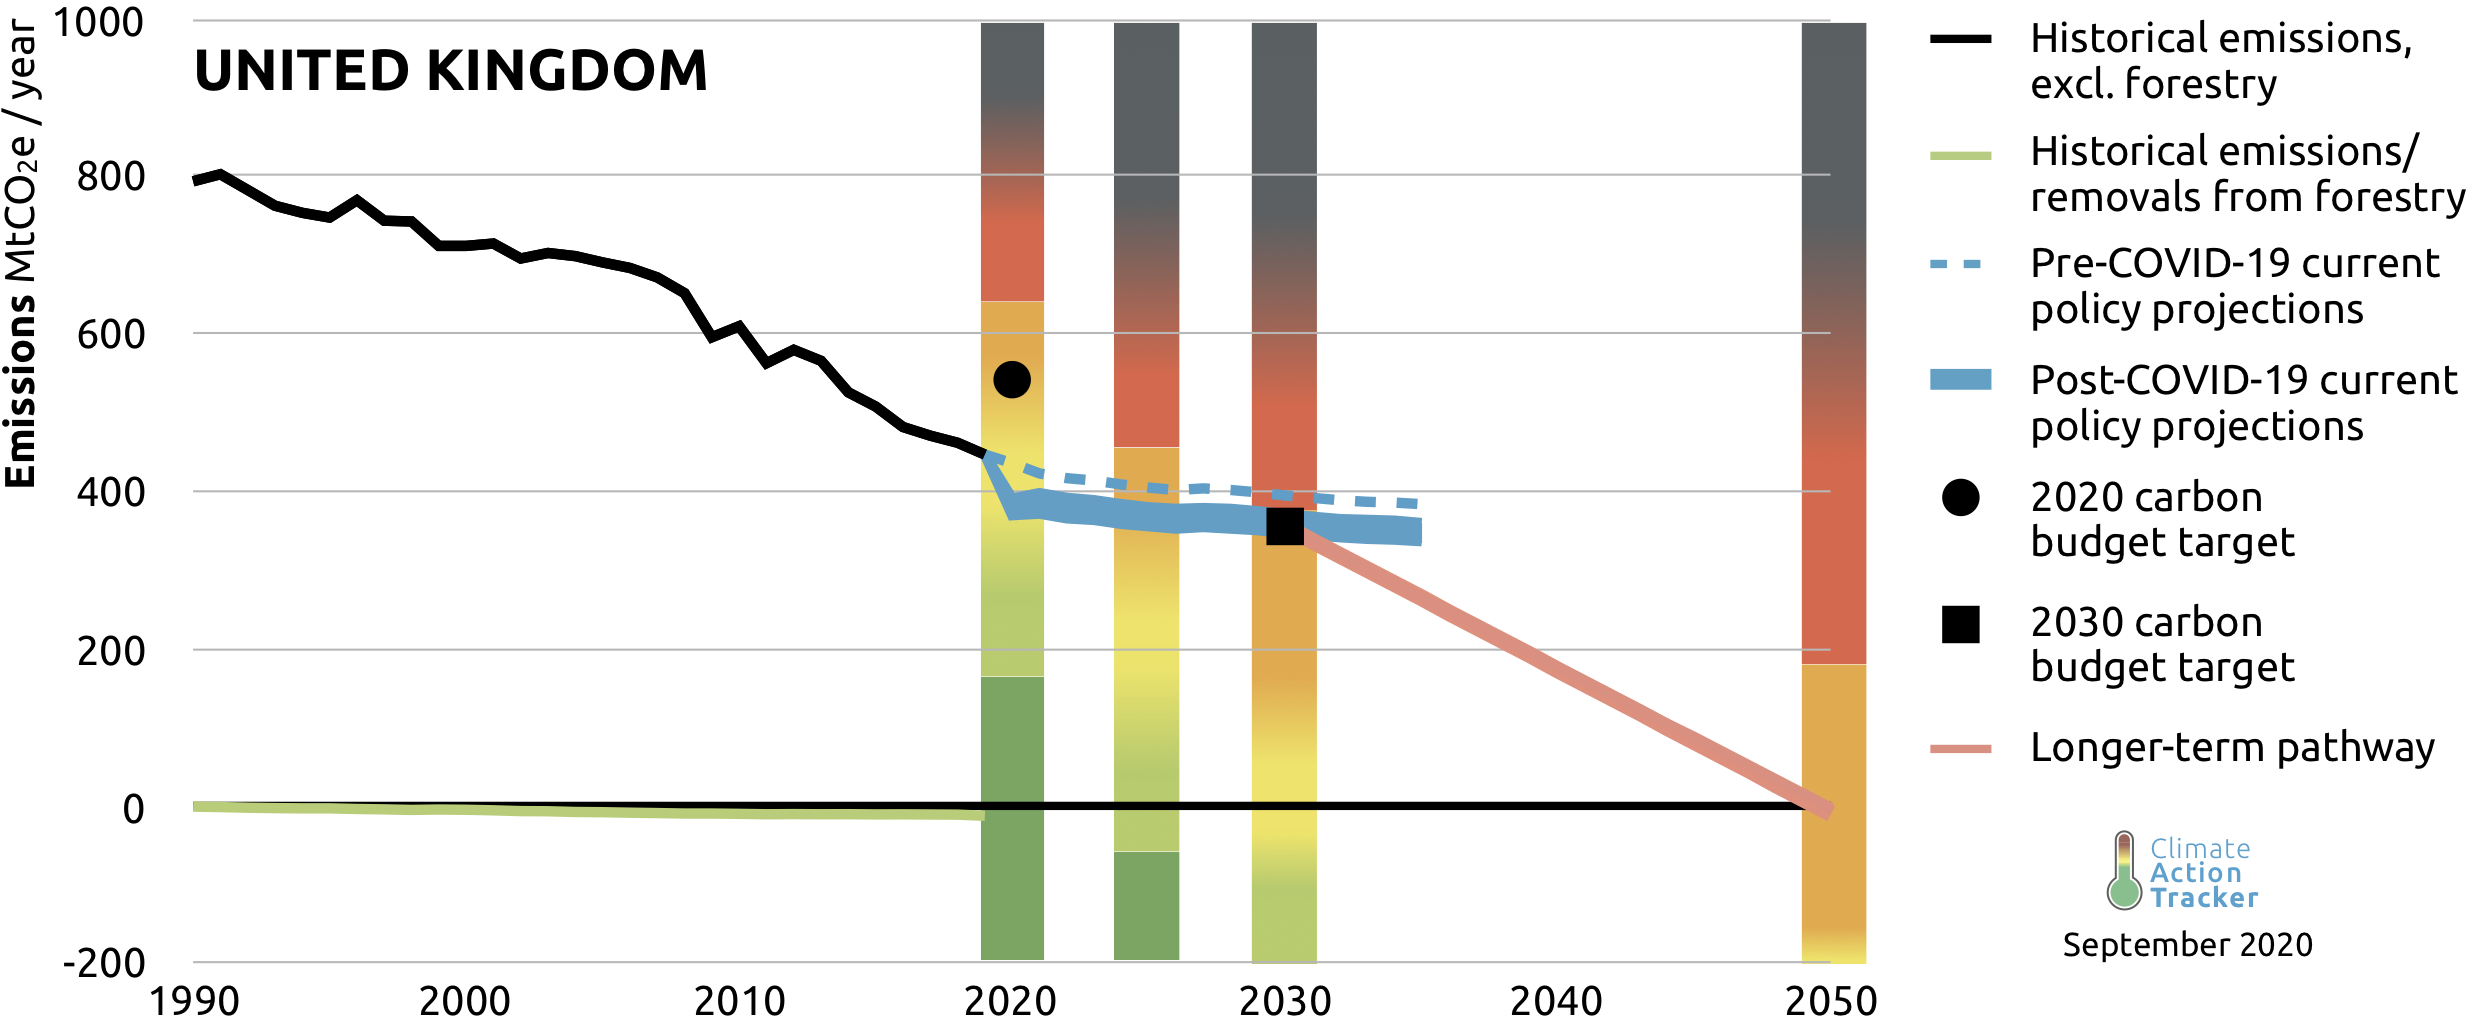 United Kingdom Climate Action Tracker